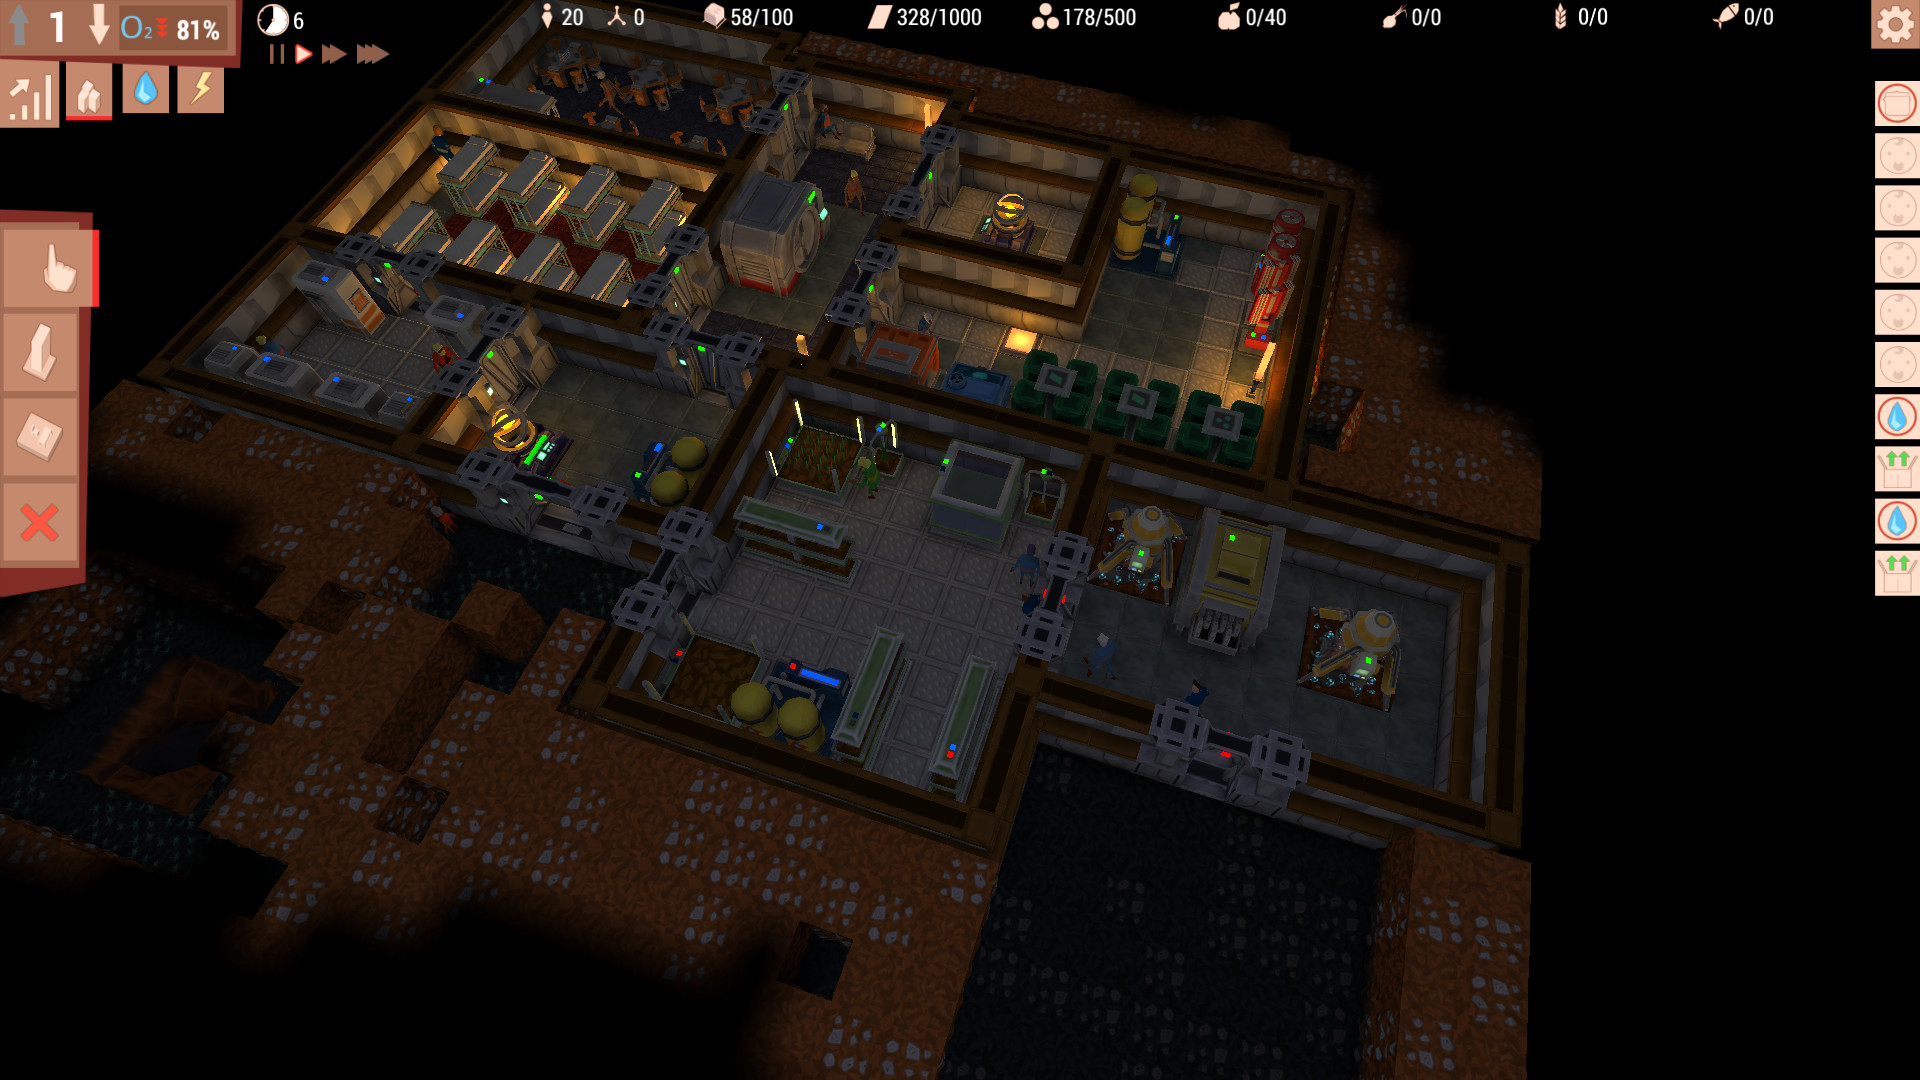 Life in Bunker screenshot